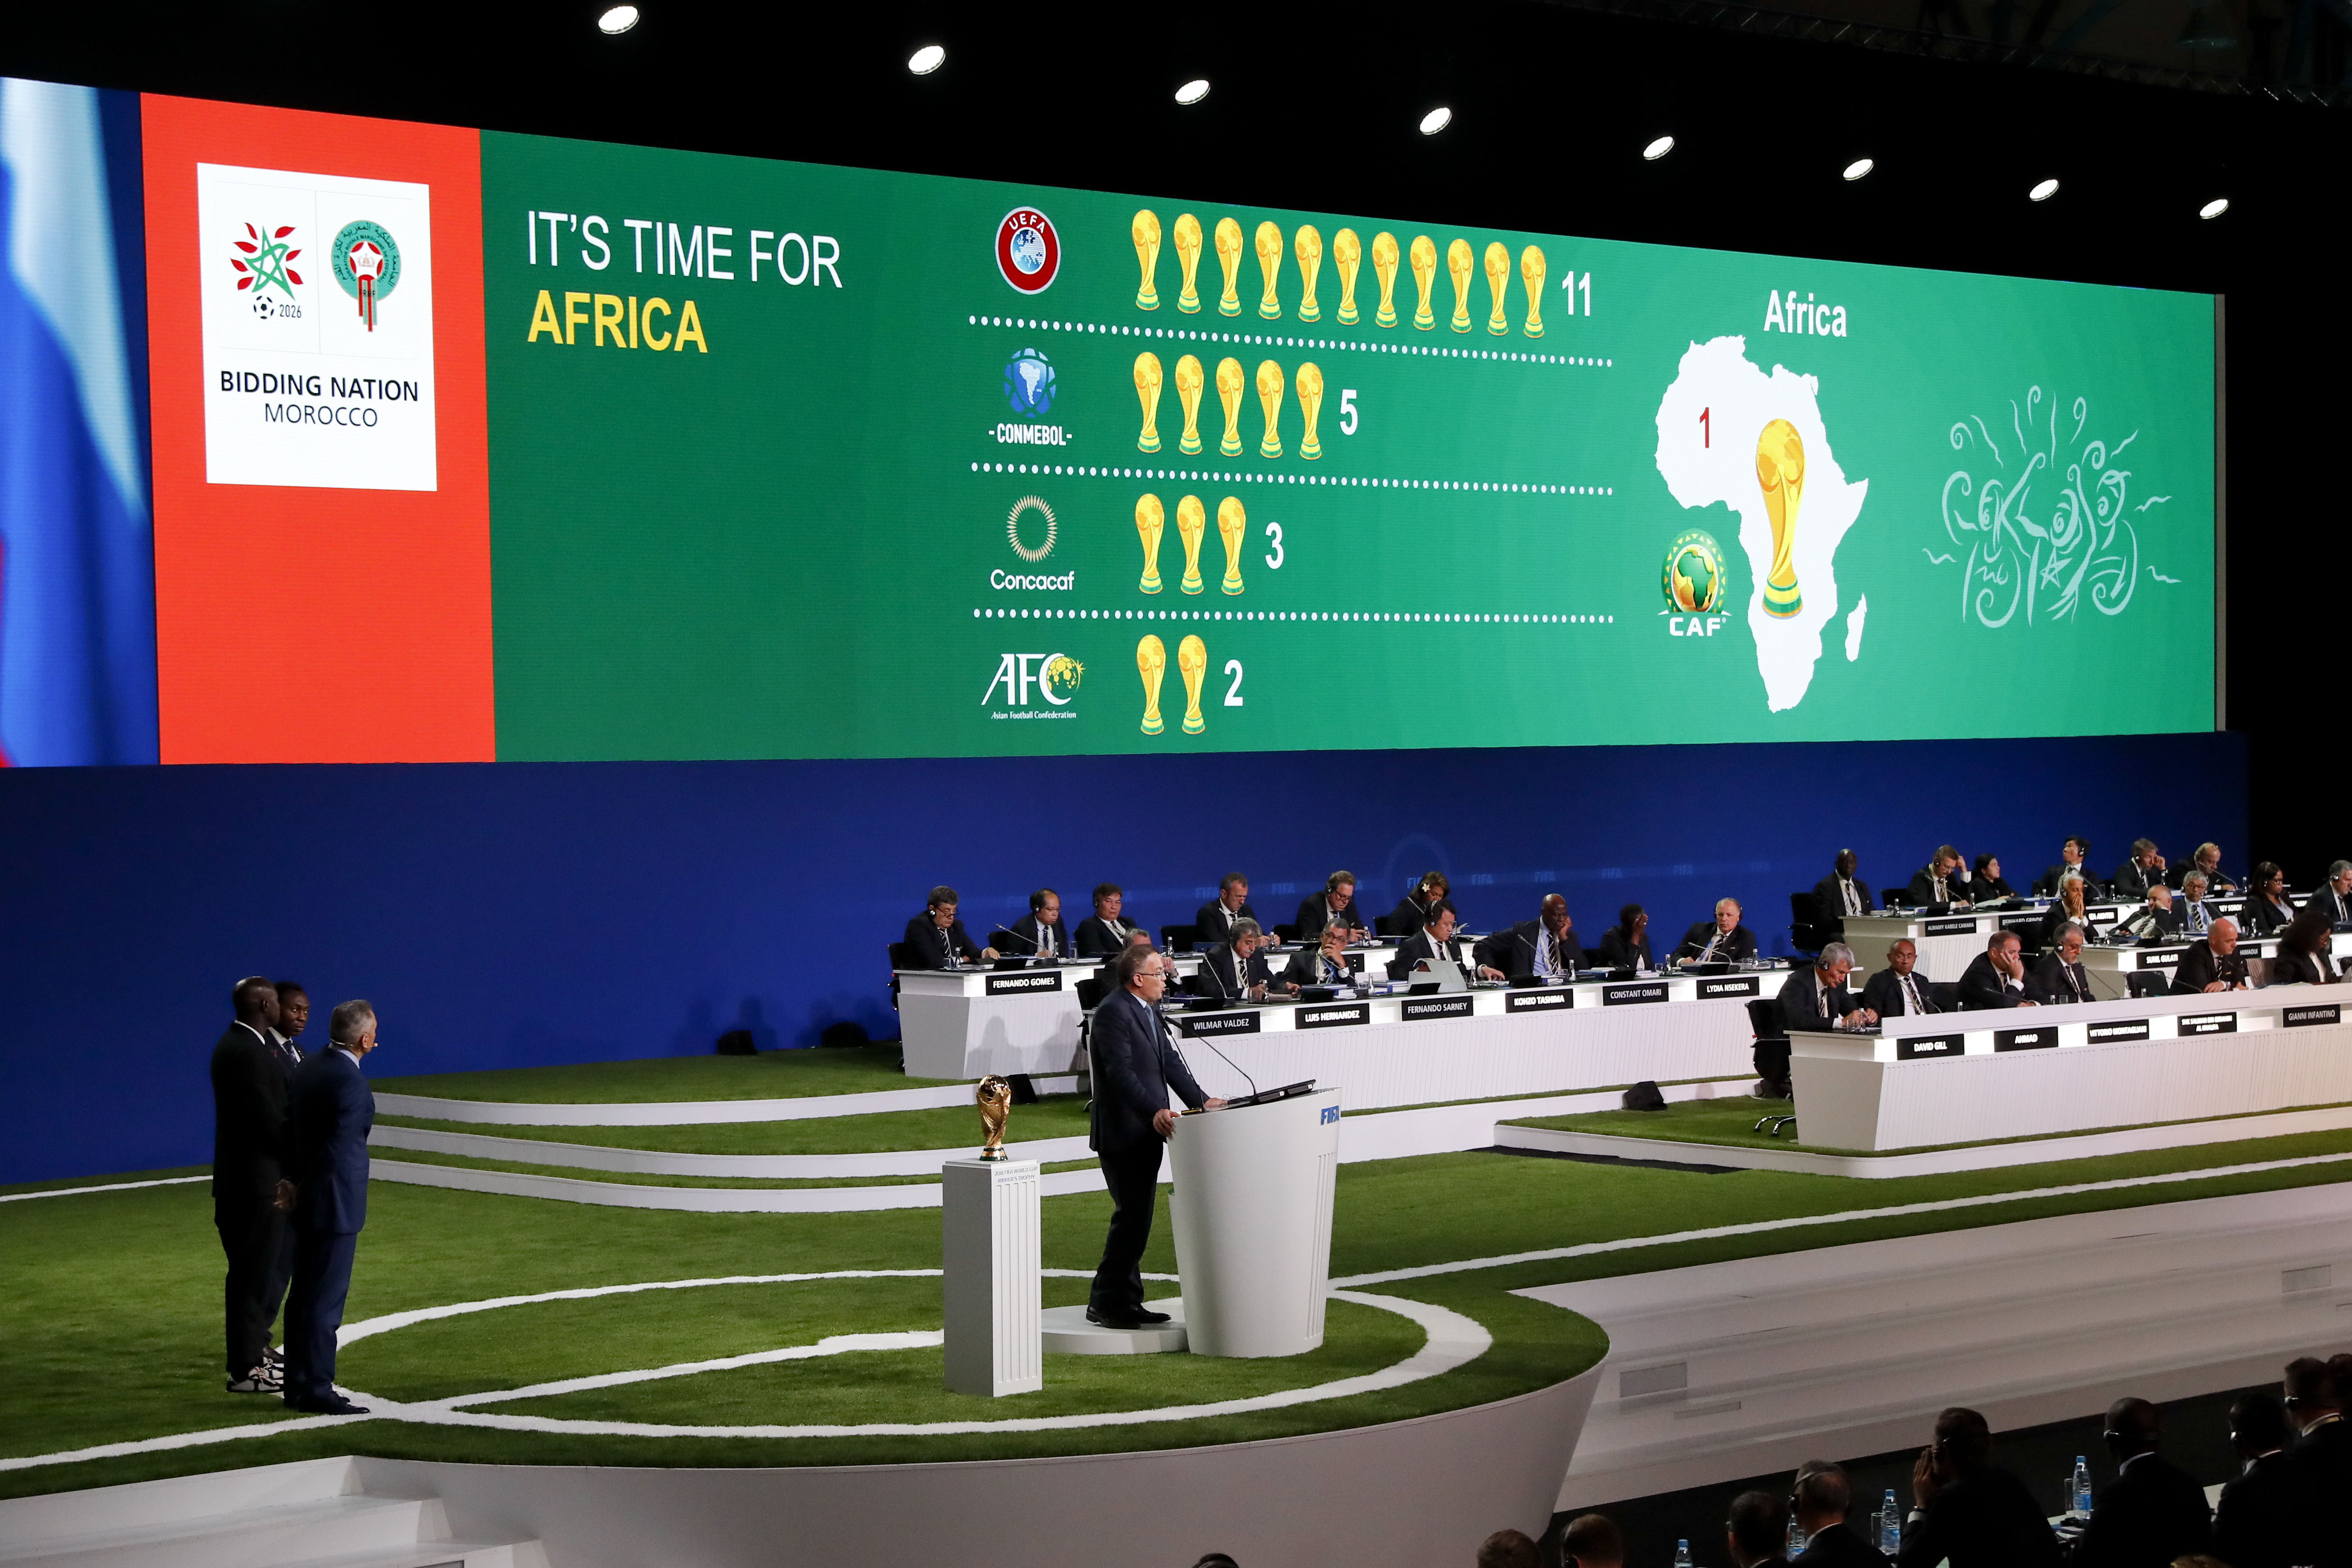 Fouzi Lekjaa, president of Morocco's Royal Football Federation presents his country's bid to host the 2026 World Cup at the FIFA congress in Moscow, Russia, Wednesday, June 13, 2018.